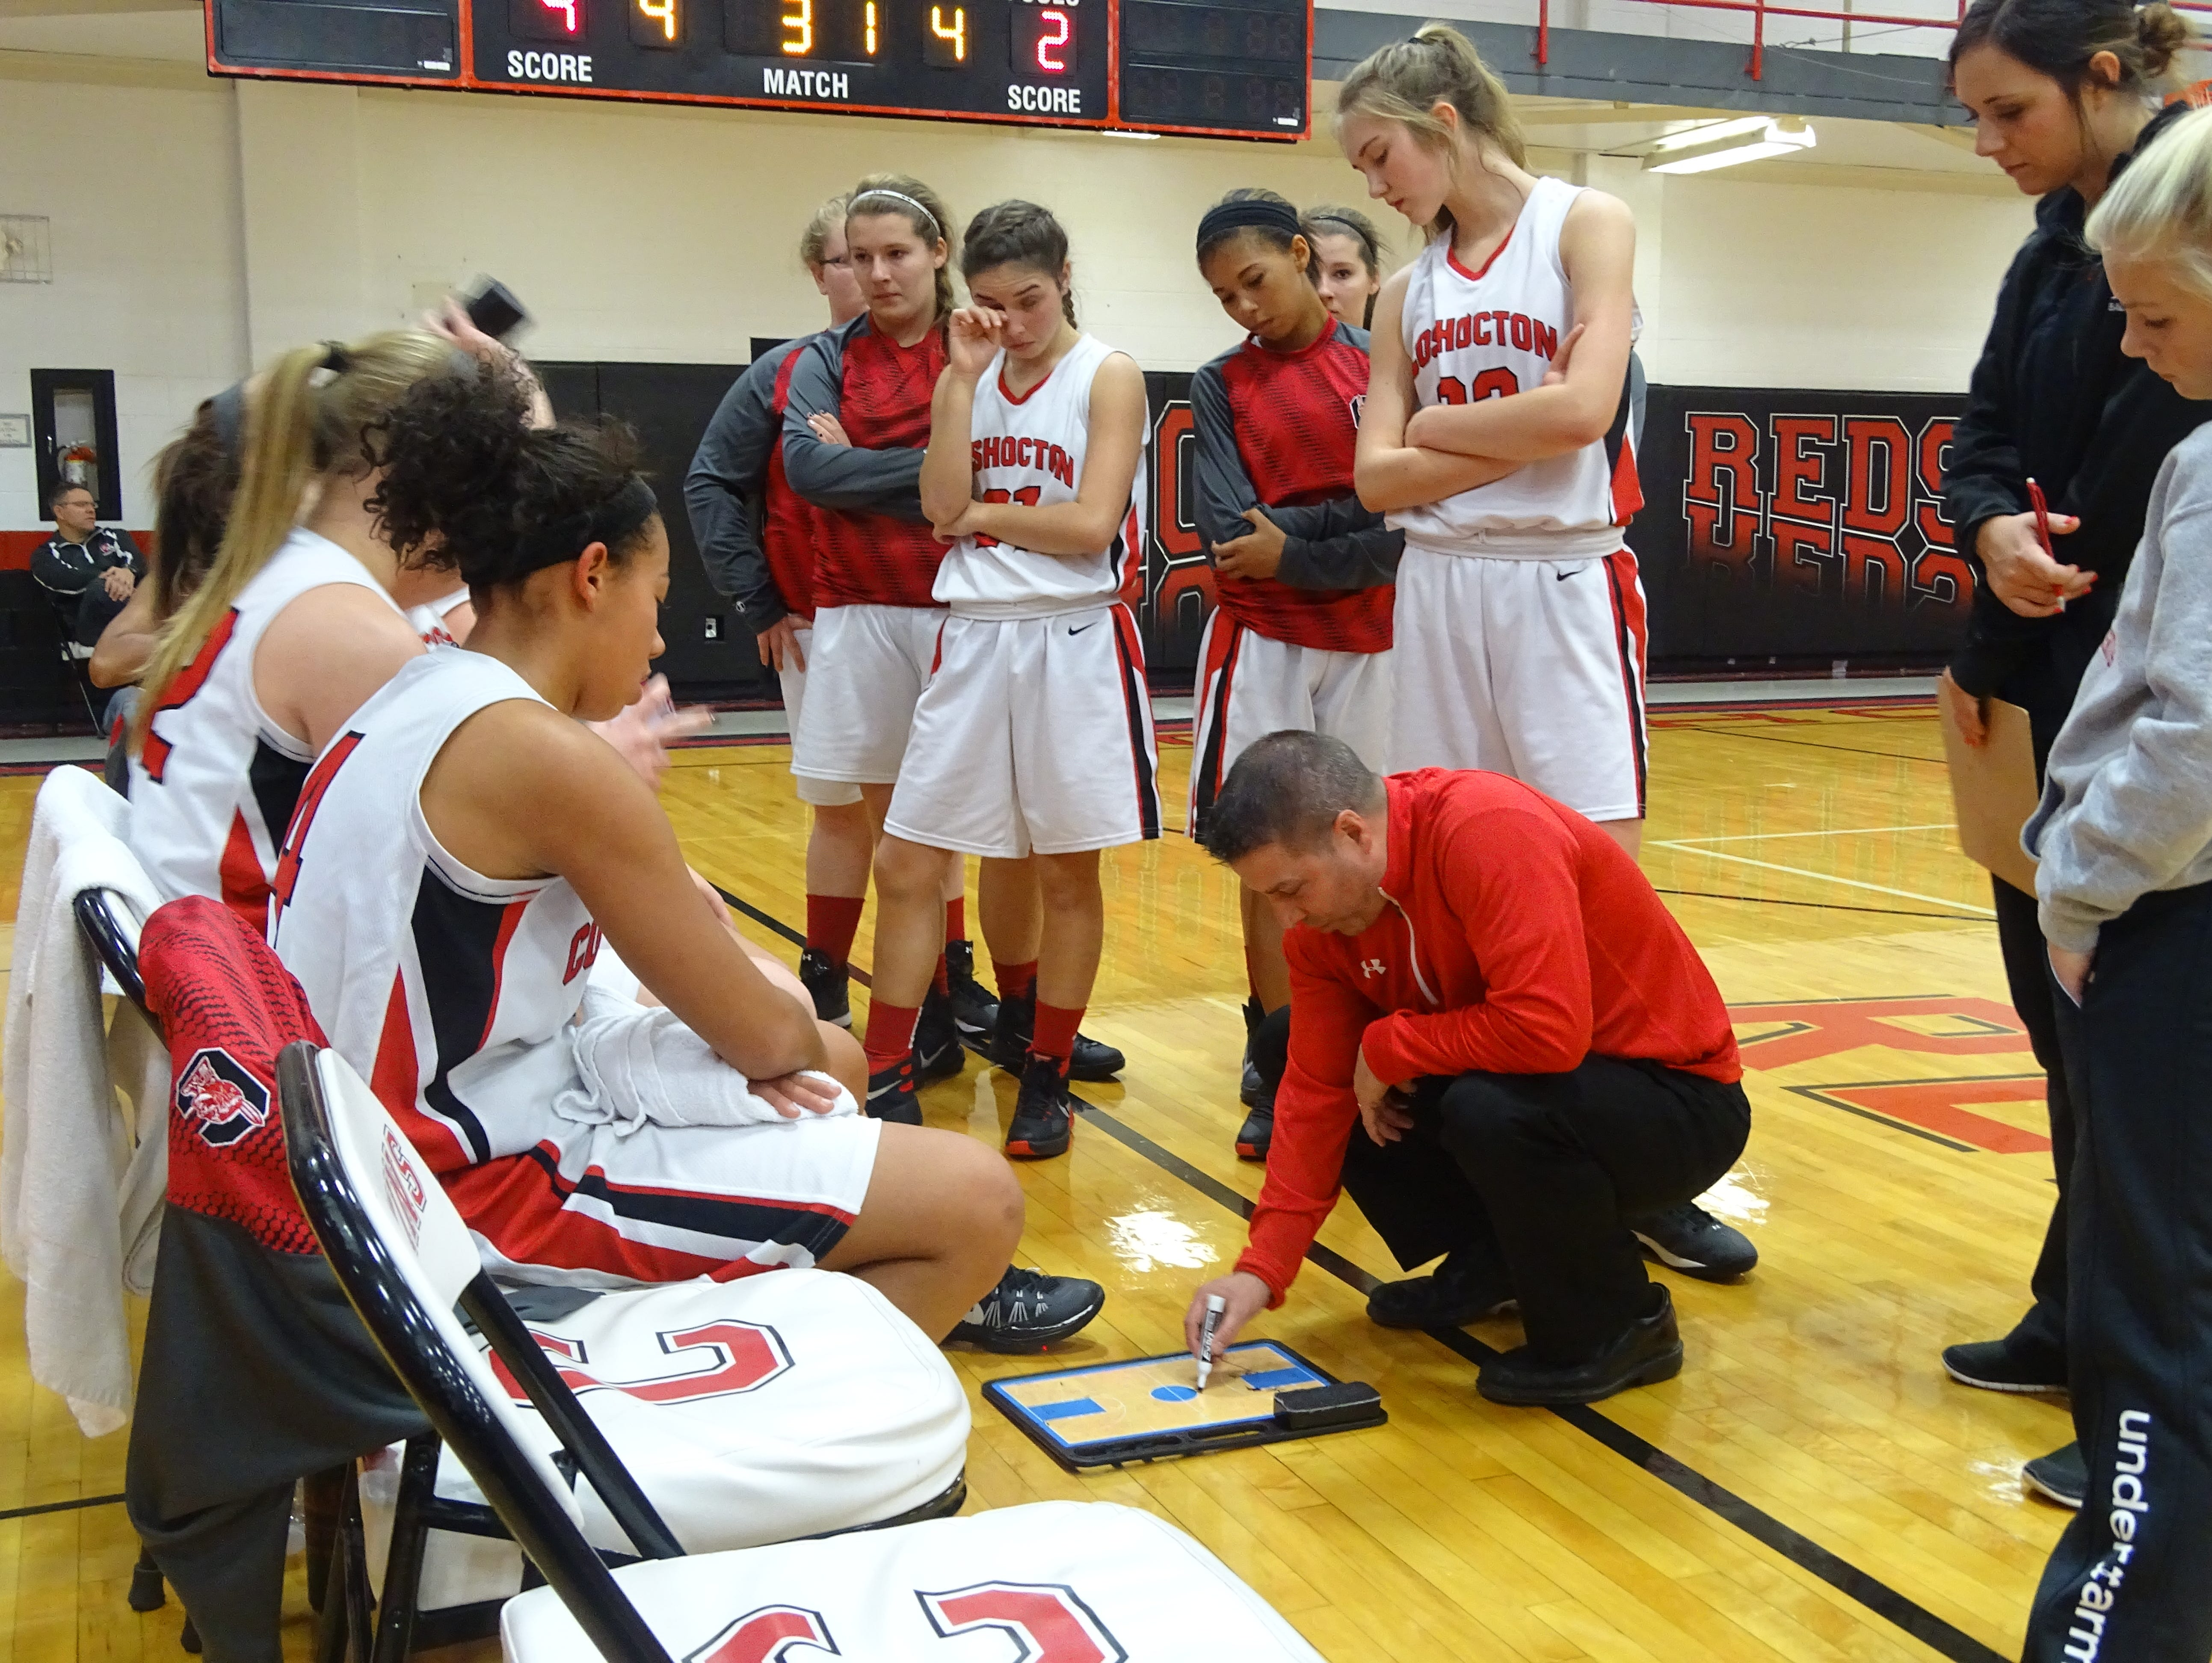 Coshocton coac h Paul Bowman goes over a play with his team during a timeout Saturday.